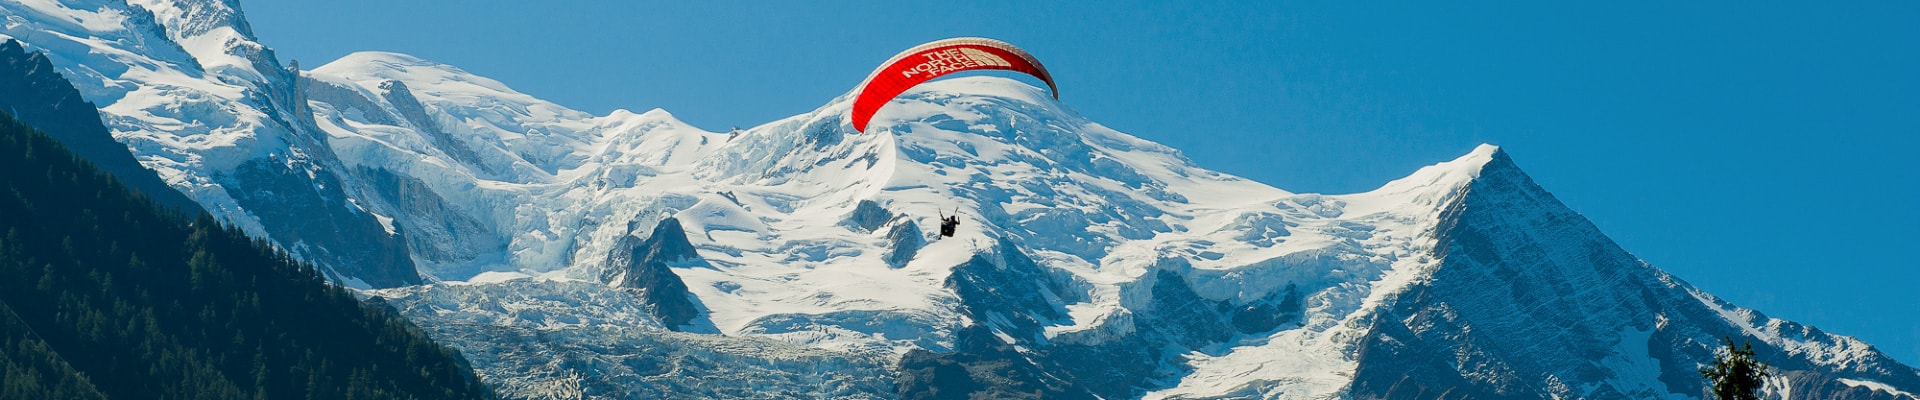 Book now your paragliding tandem flight in Chamonix